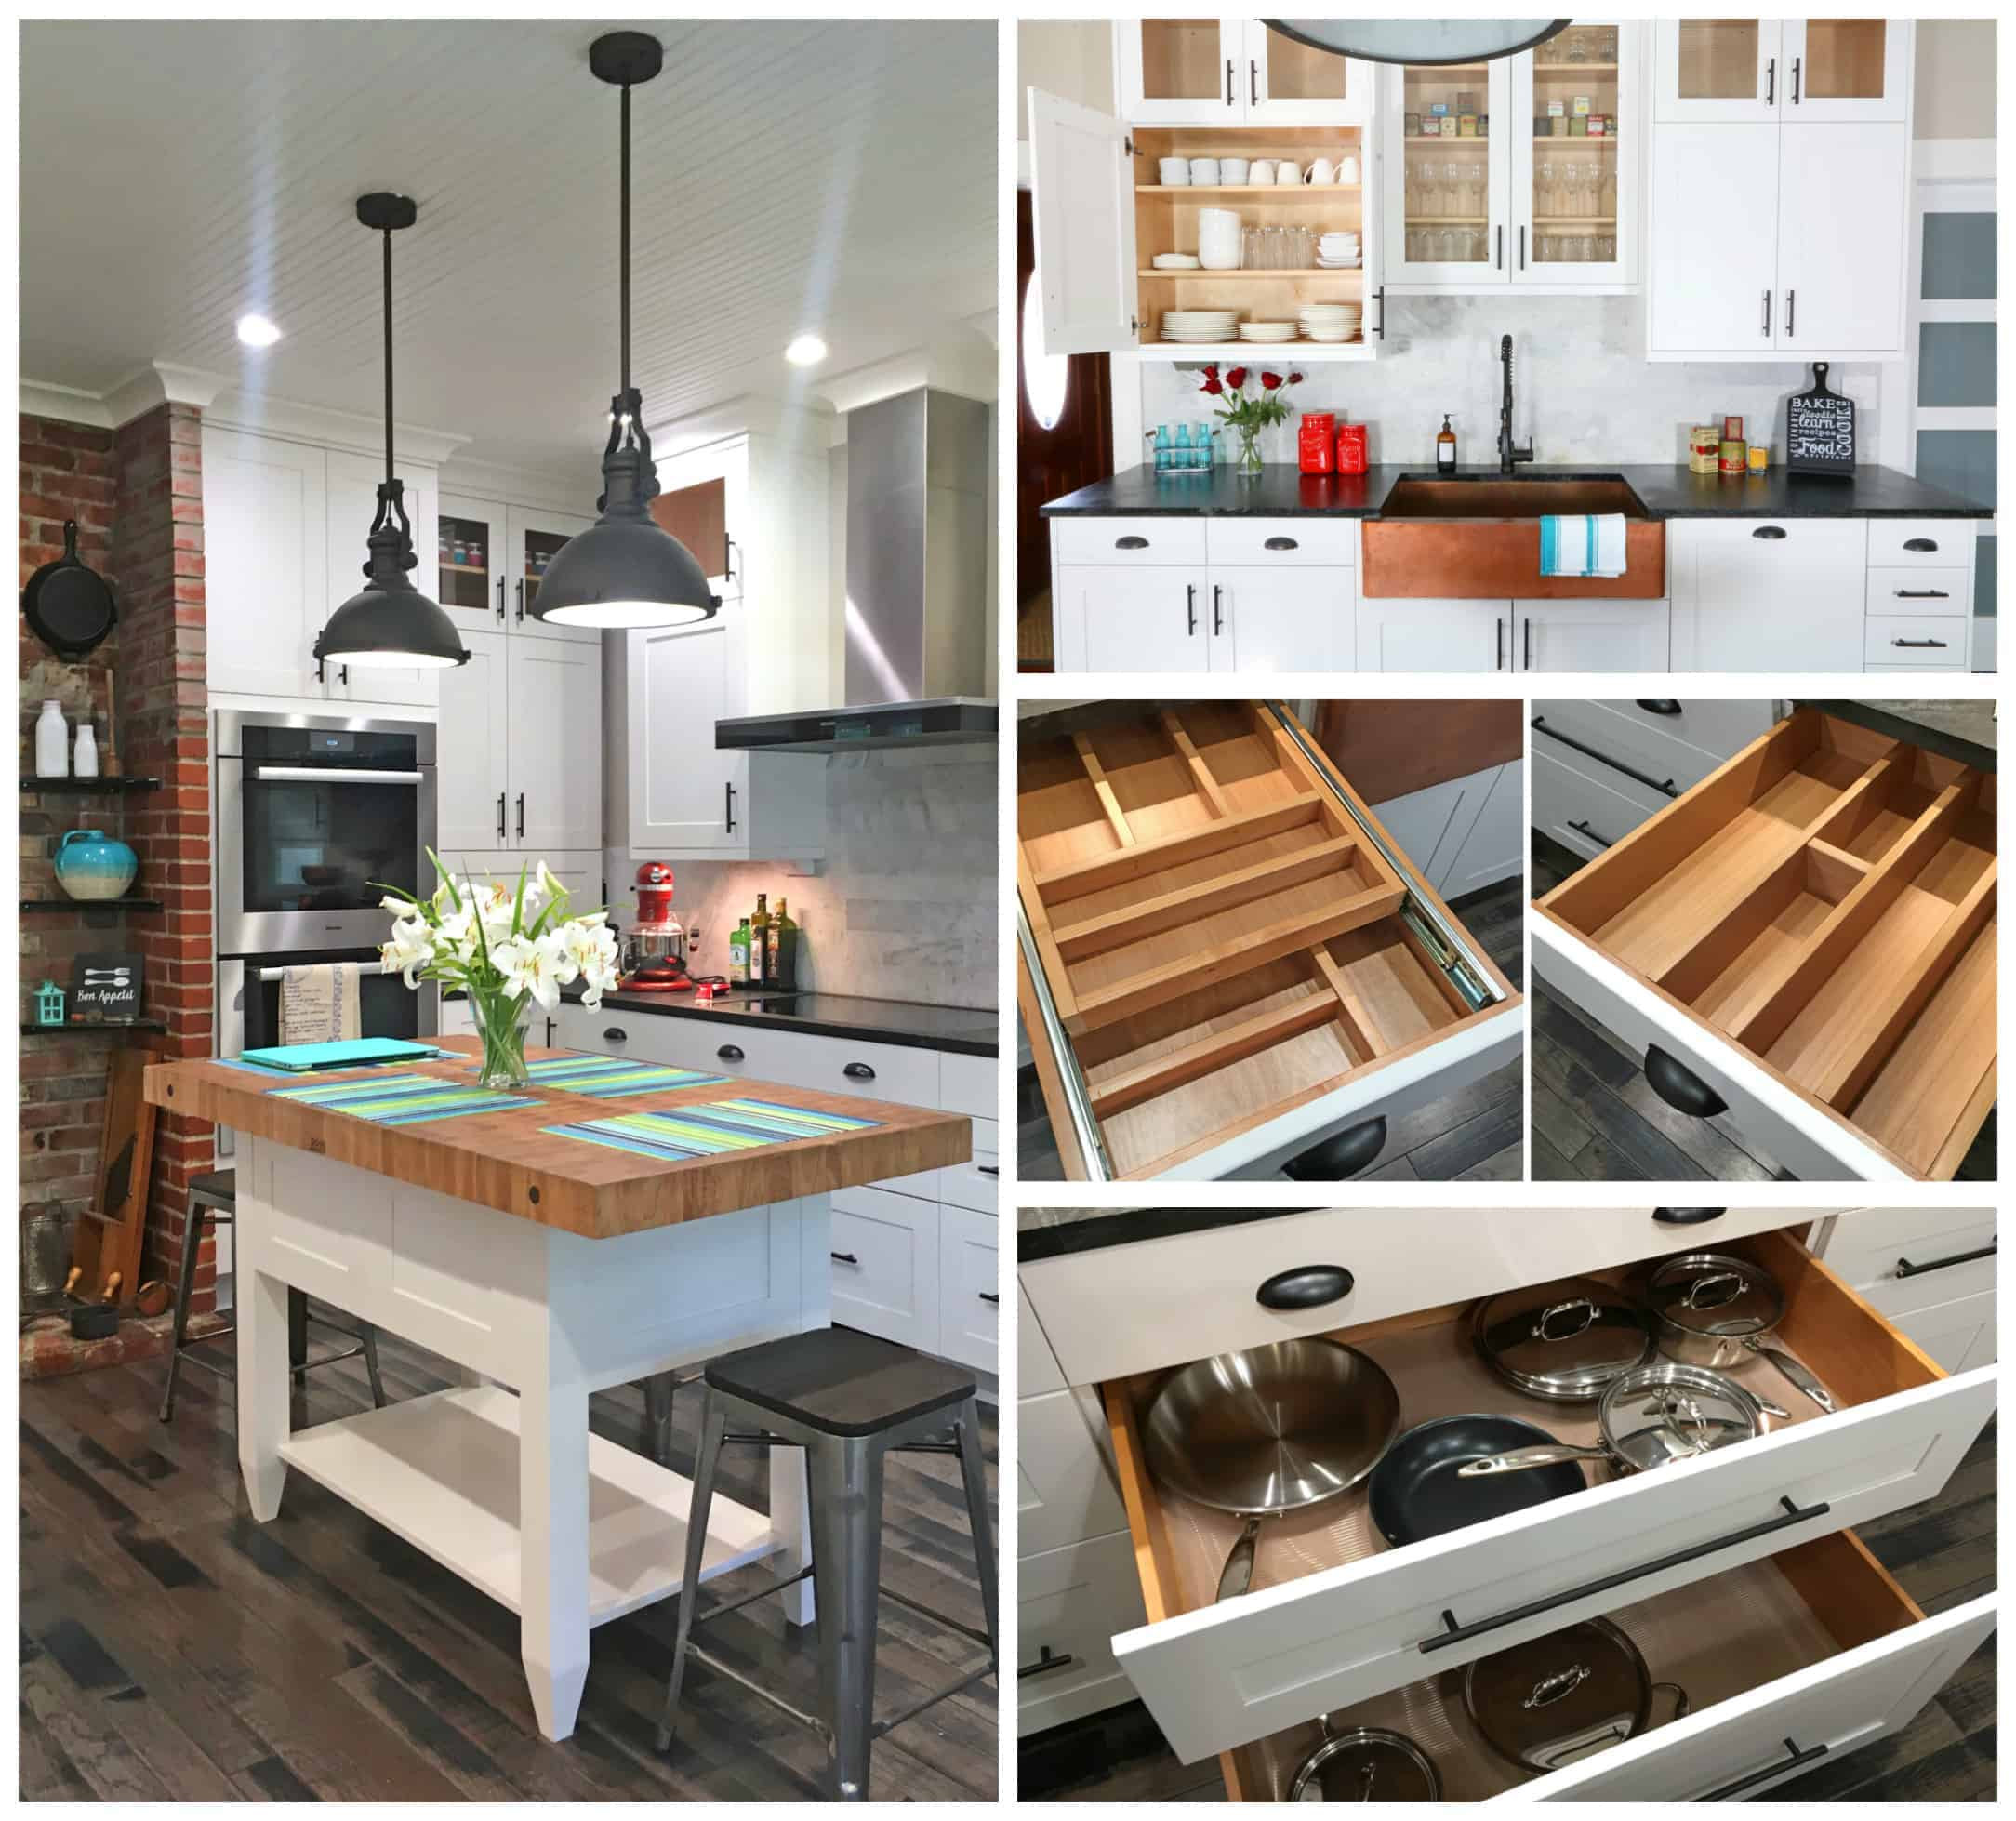 farmhouse kitchen cabinets cast iron sinks the 1912 modern remodel daring